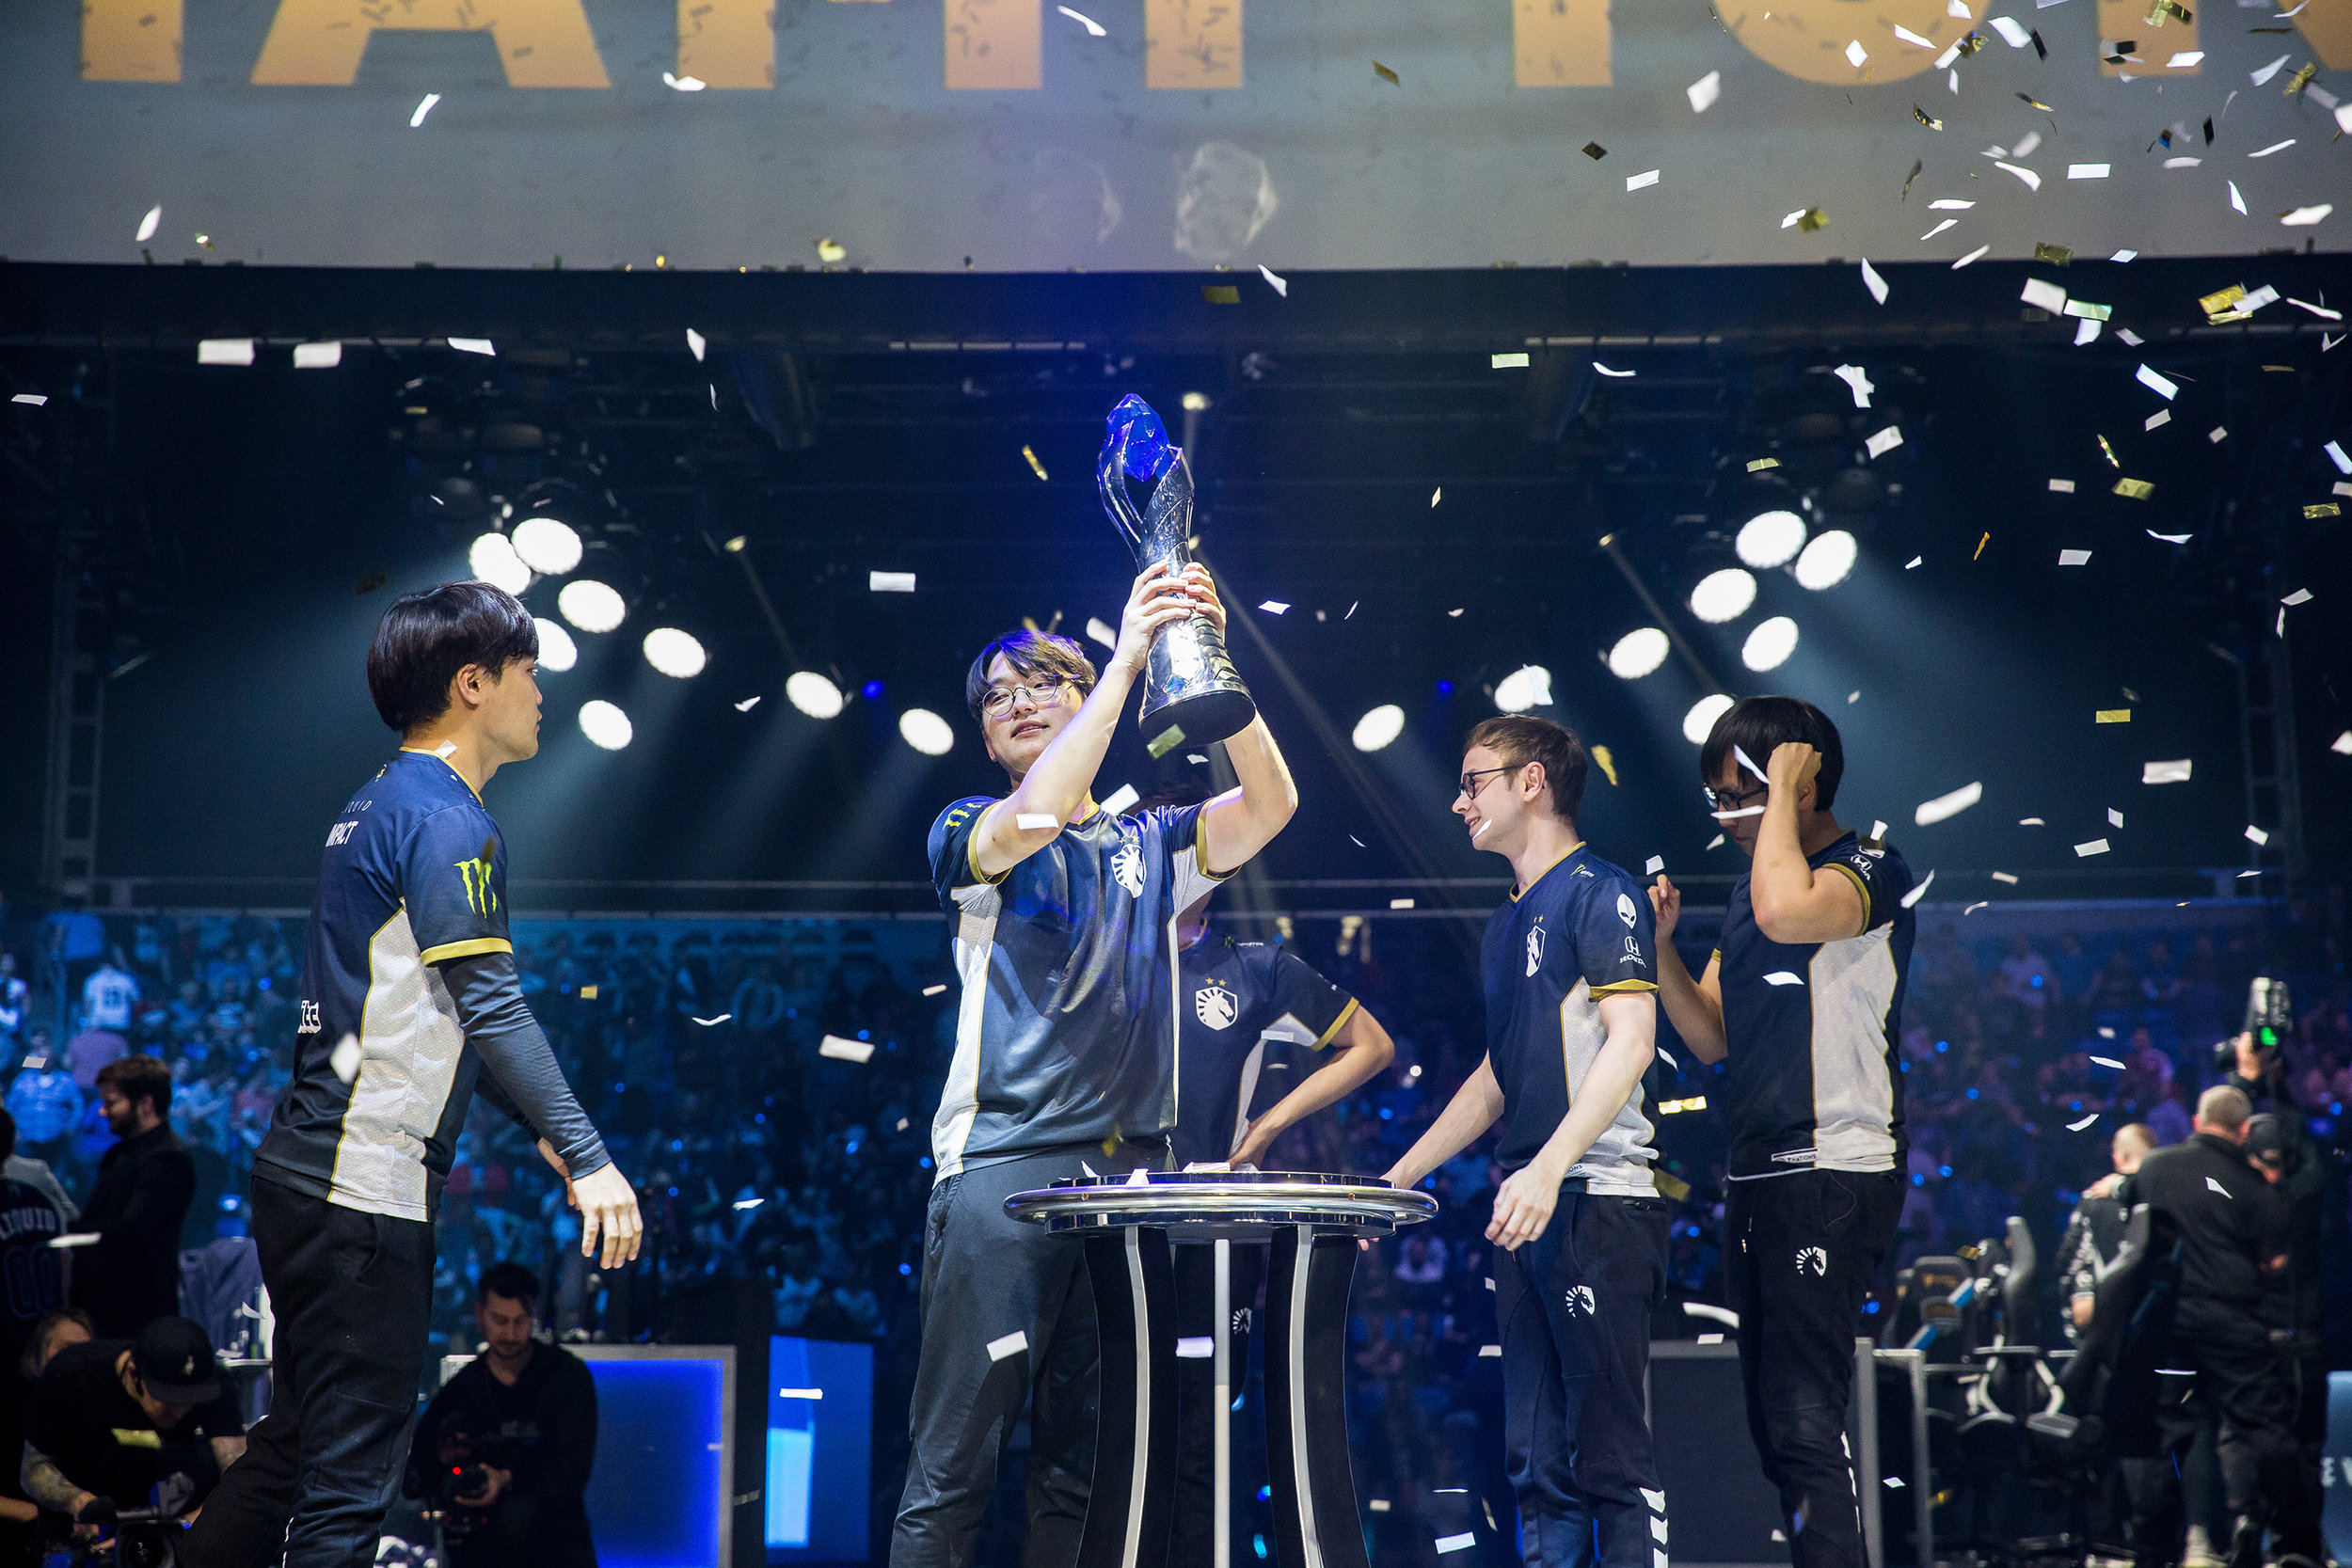 ST LOUIS, MO - APRIL 13: Team Liquid hoist trophy after 3-2 win over Team SoloMid LCS Spring Finals at Chaifetz Arena on April 13, 2019 in St Louis, Missouri. Photo by David Doran/ESPAT Media